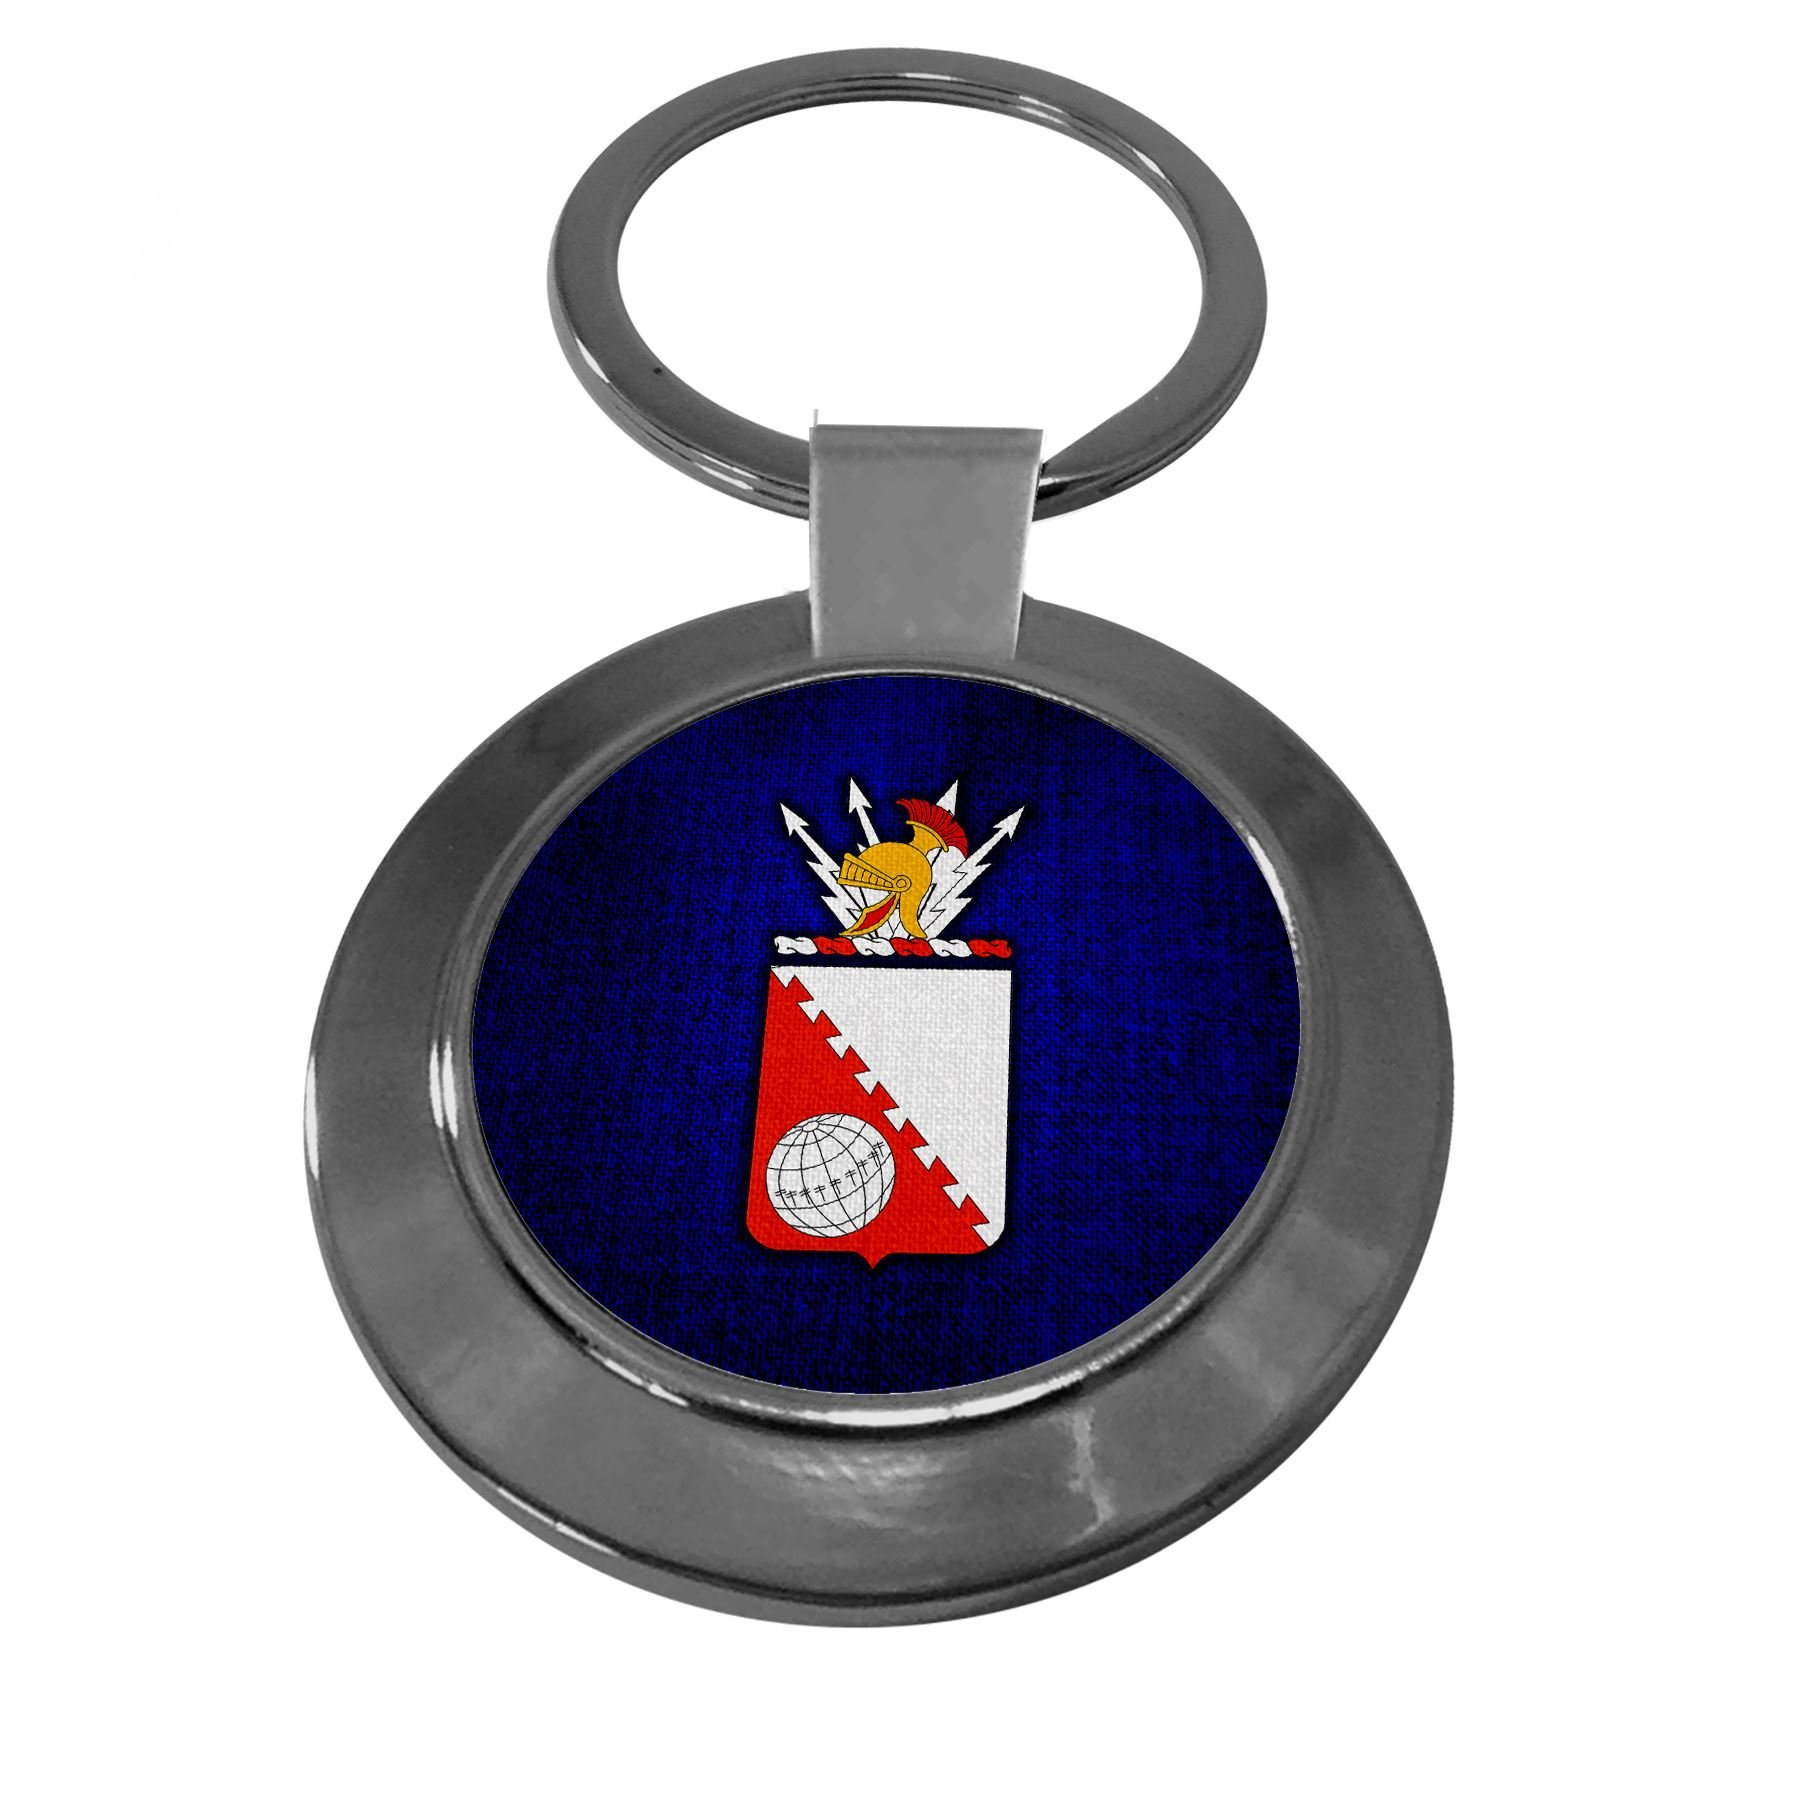 Premium Key Ring with U.S. Army 30th Signal Battalion, coat of arms by ExpressItBest (Image #1)